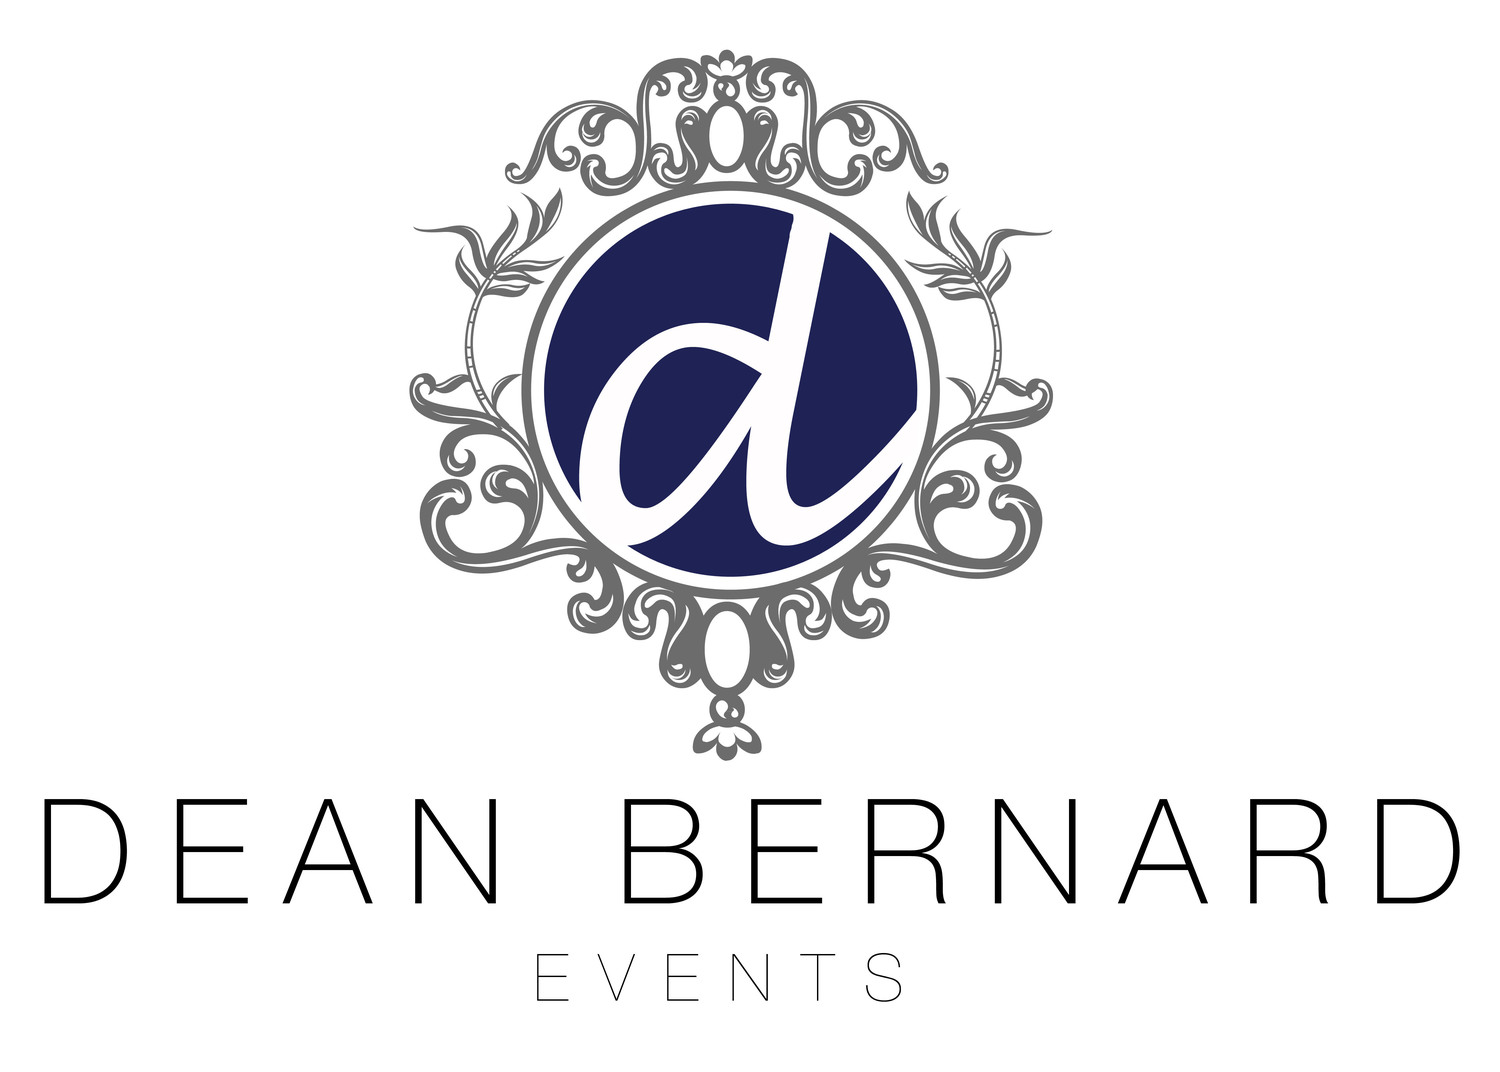 Dean Bernard Events